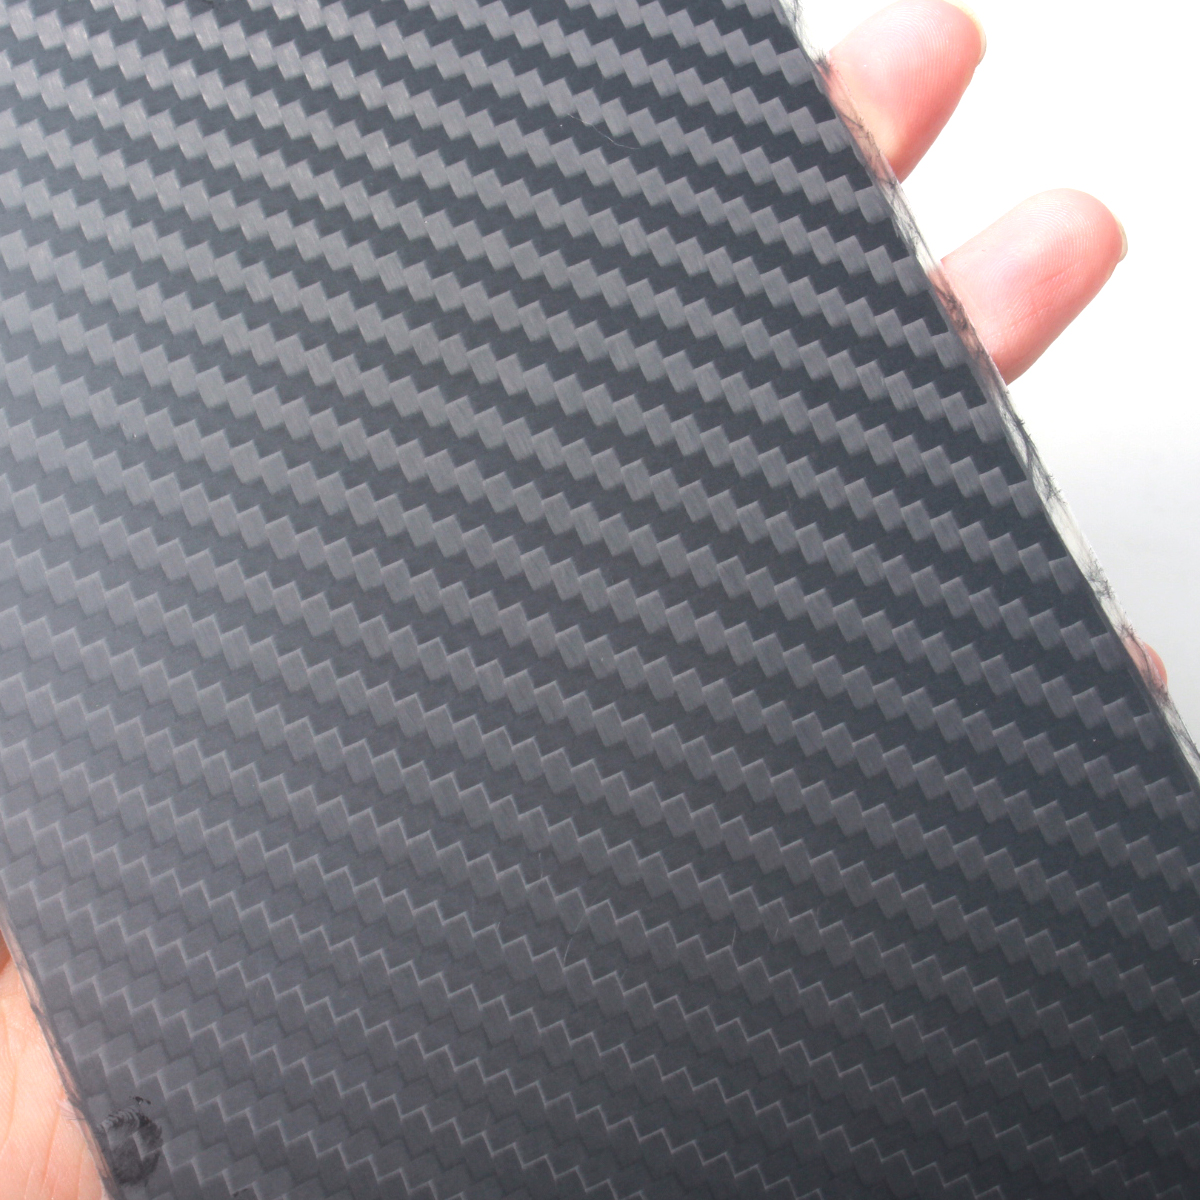 Plain/ Twill Weave Carbon Fiber Sheet 1mm x 100mm x 250mm